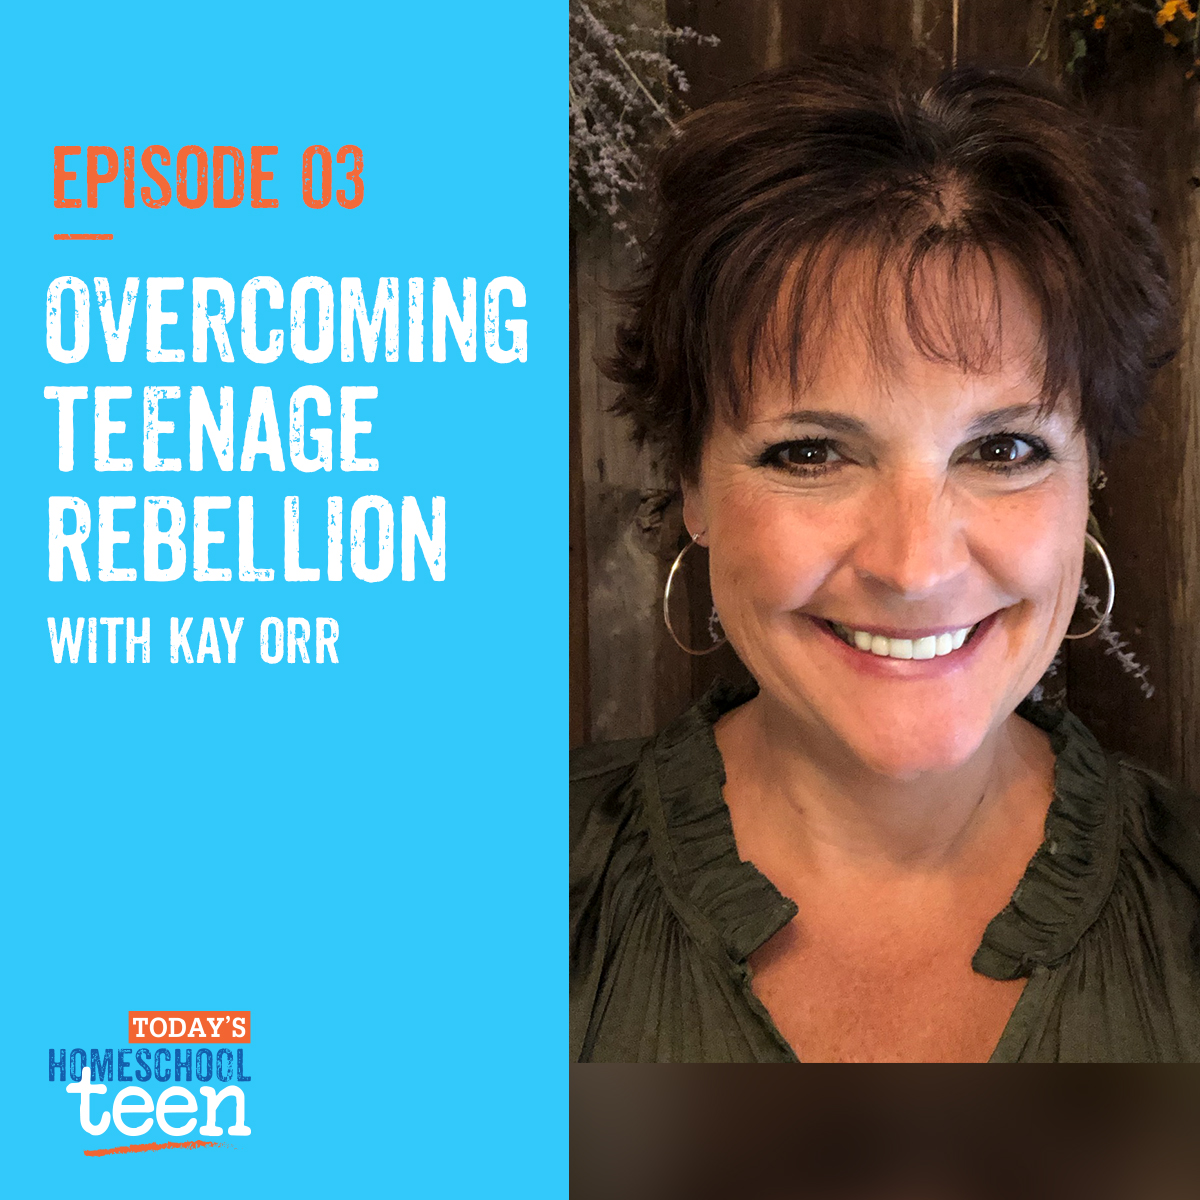 Episode 3: Overcoming Teenage Rebellion with Kay Orr